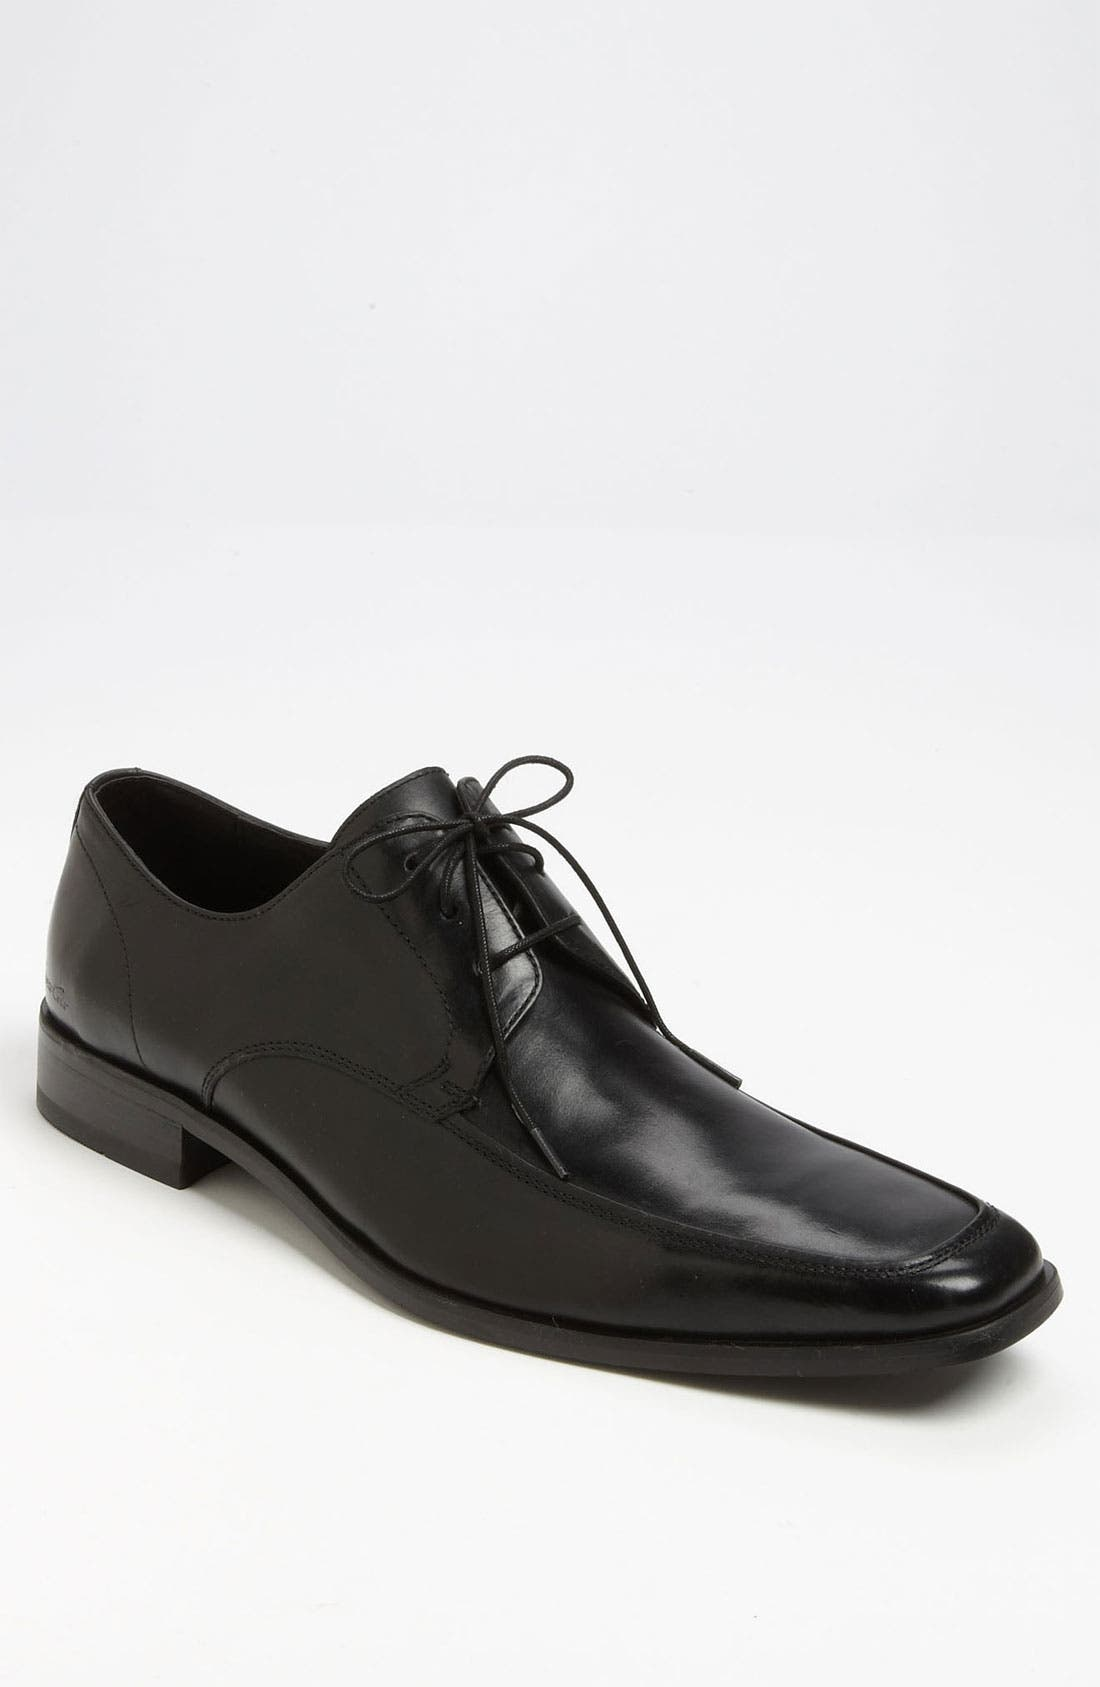 Main Image - Kenneth Cole New York 'First Sight' Apron Toe Derby